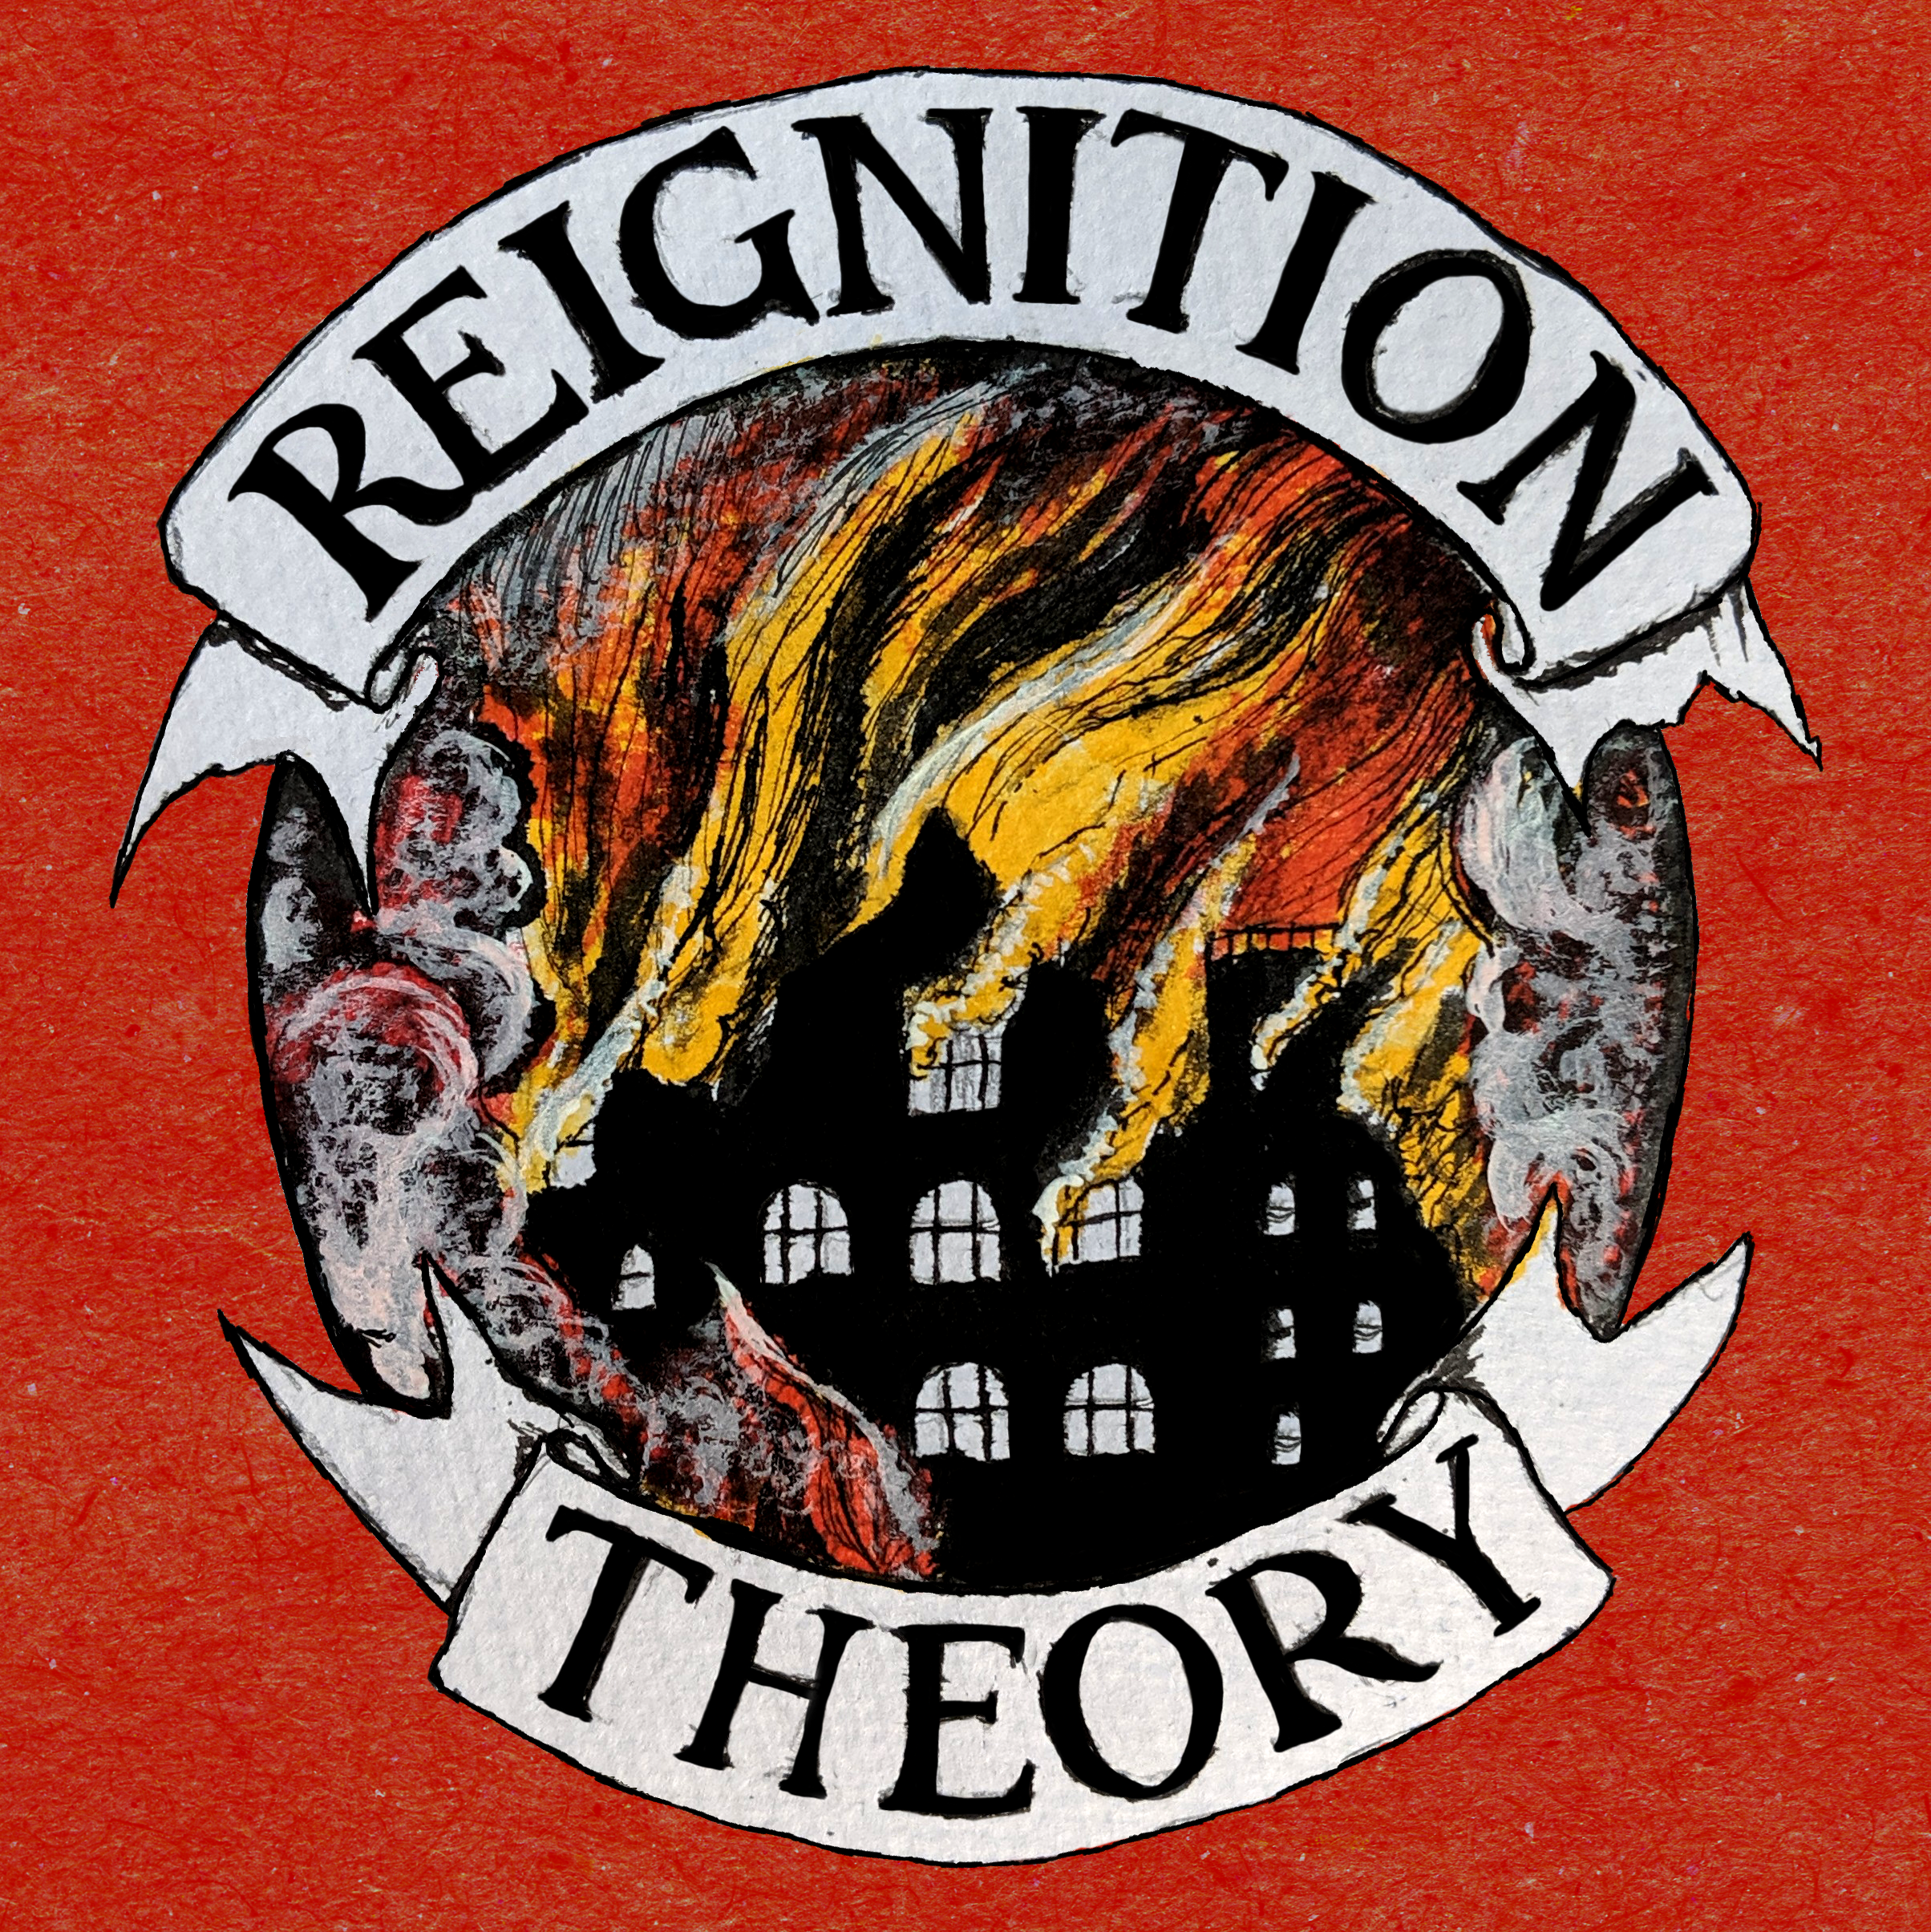 Reignition Theory Red2.png